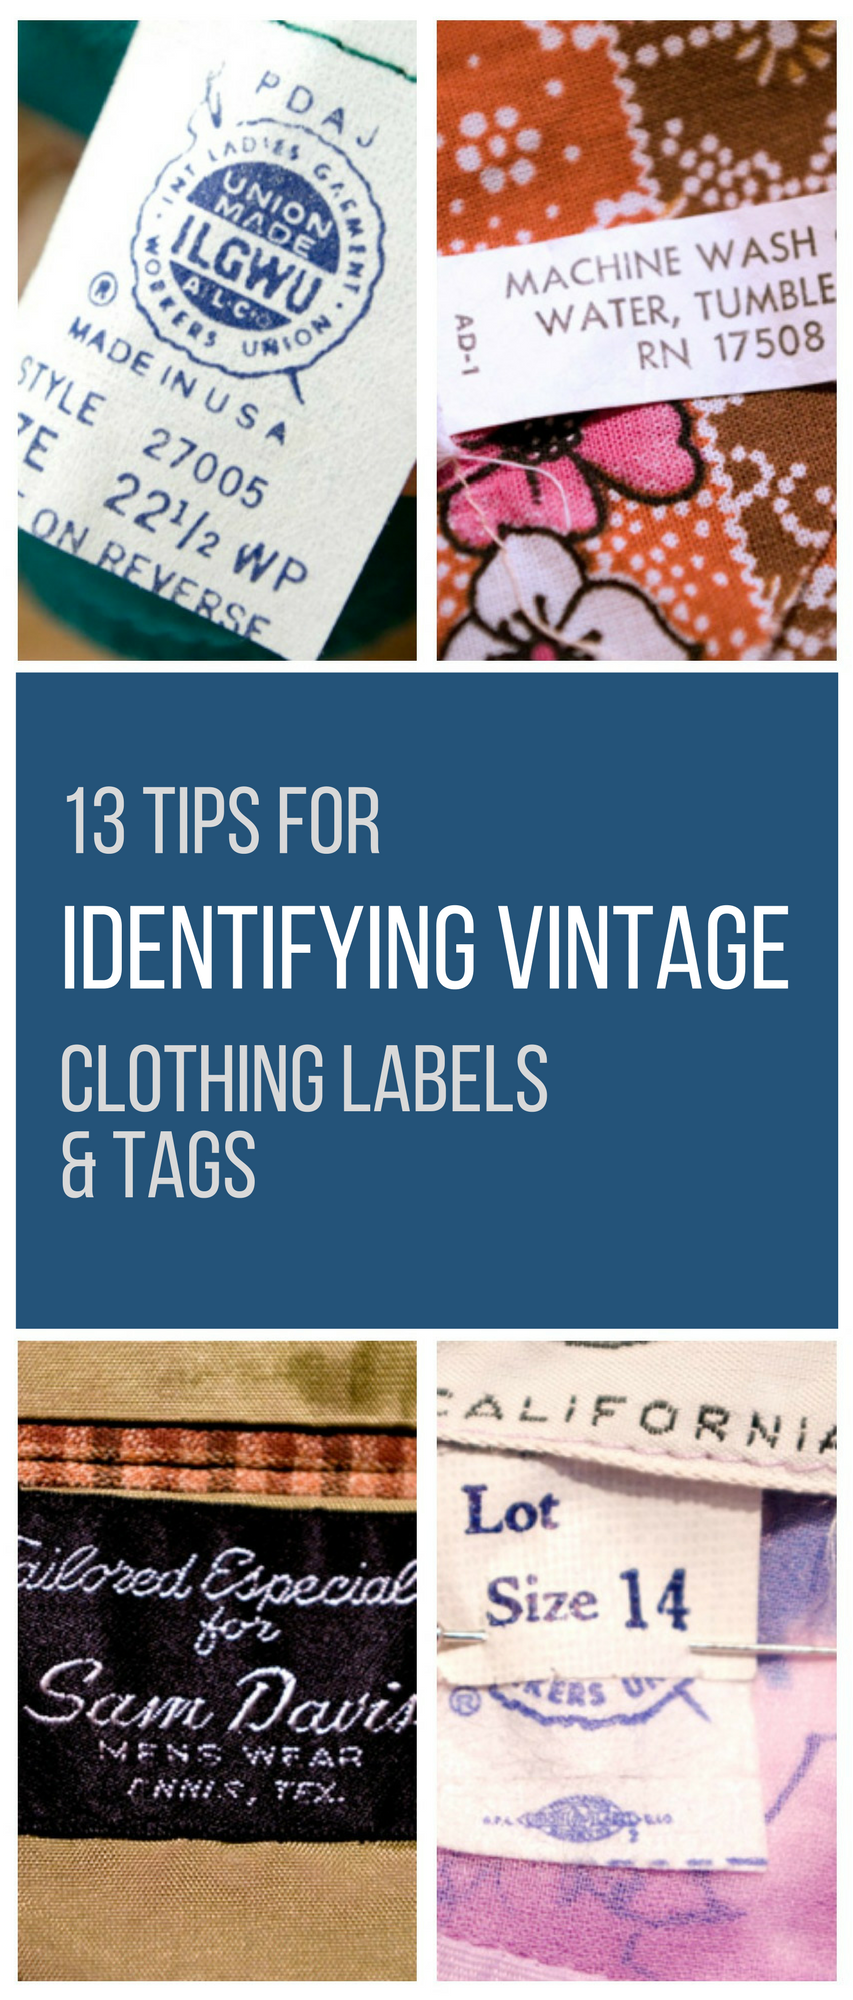 874cde4b07a 13 Tips for Identifying Vintage Clothing Labels   Tags Vintage Labels